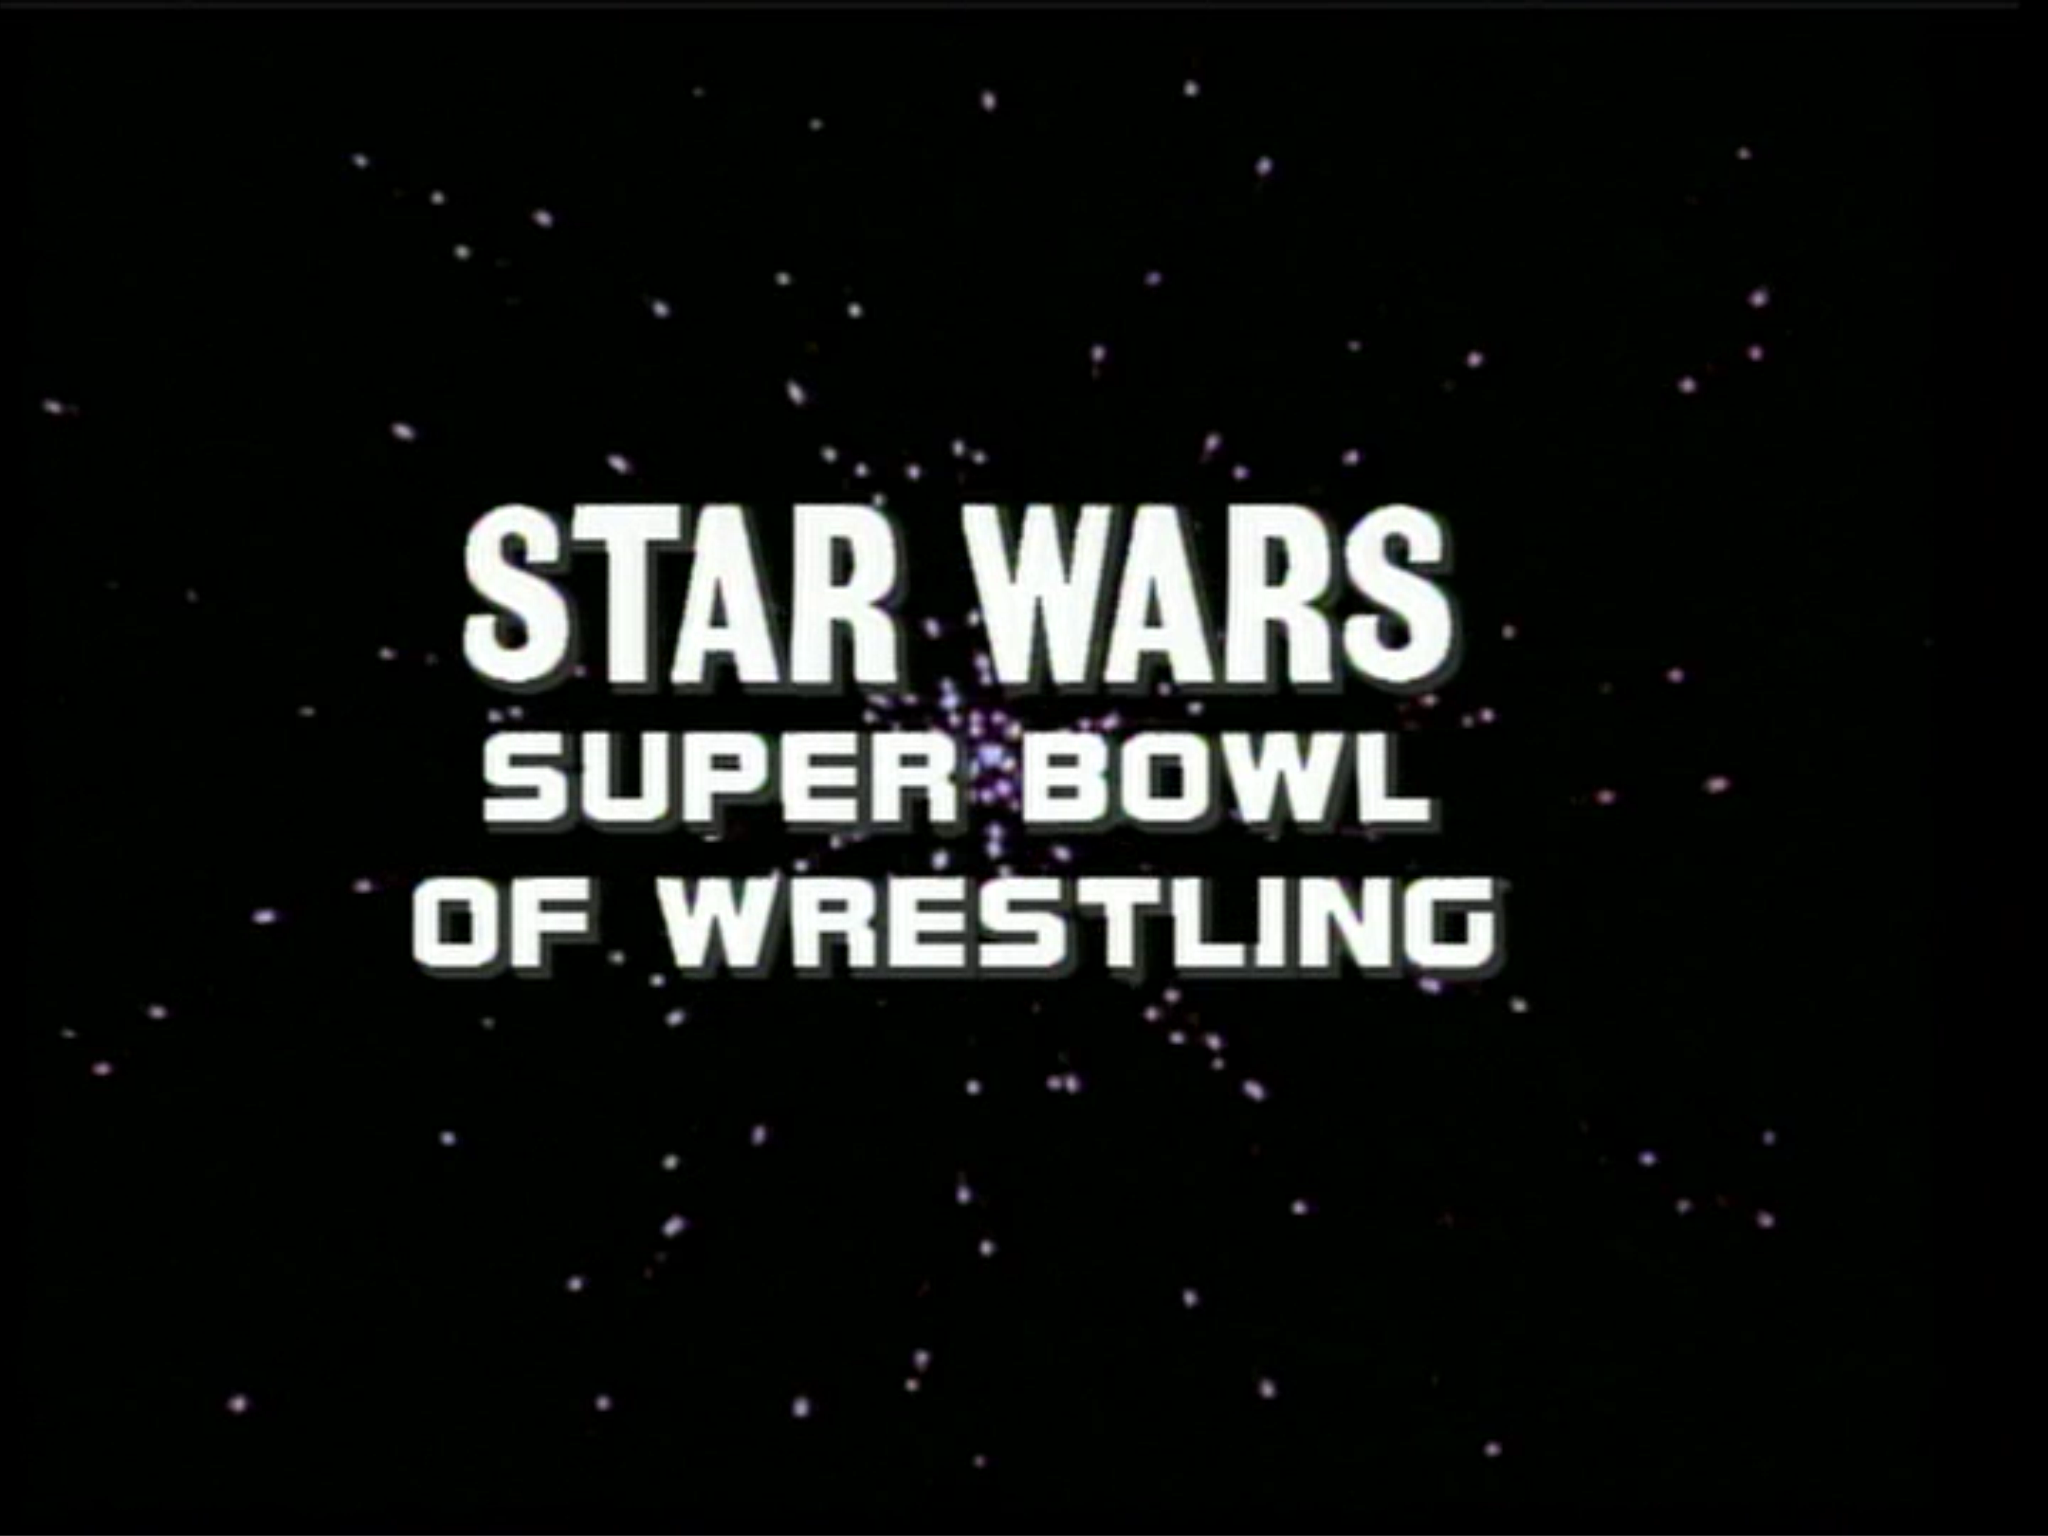 World Class Championship Wrestling shamelessly capitalized on the Star Wars craze, but it produced some great matches.